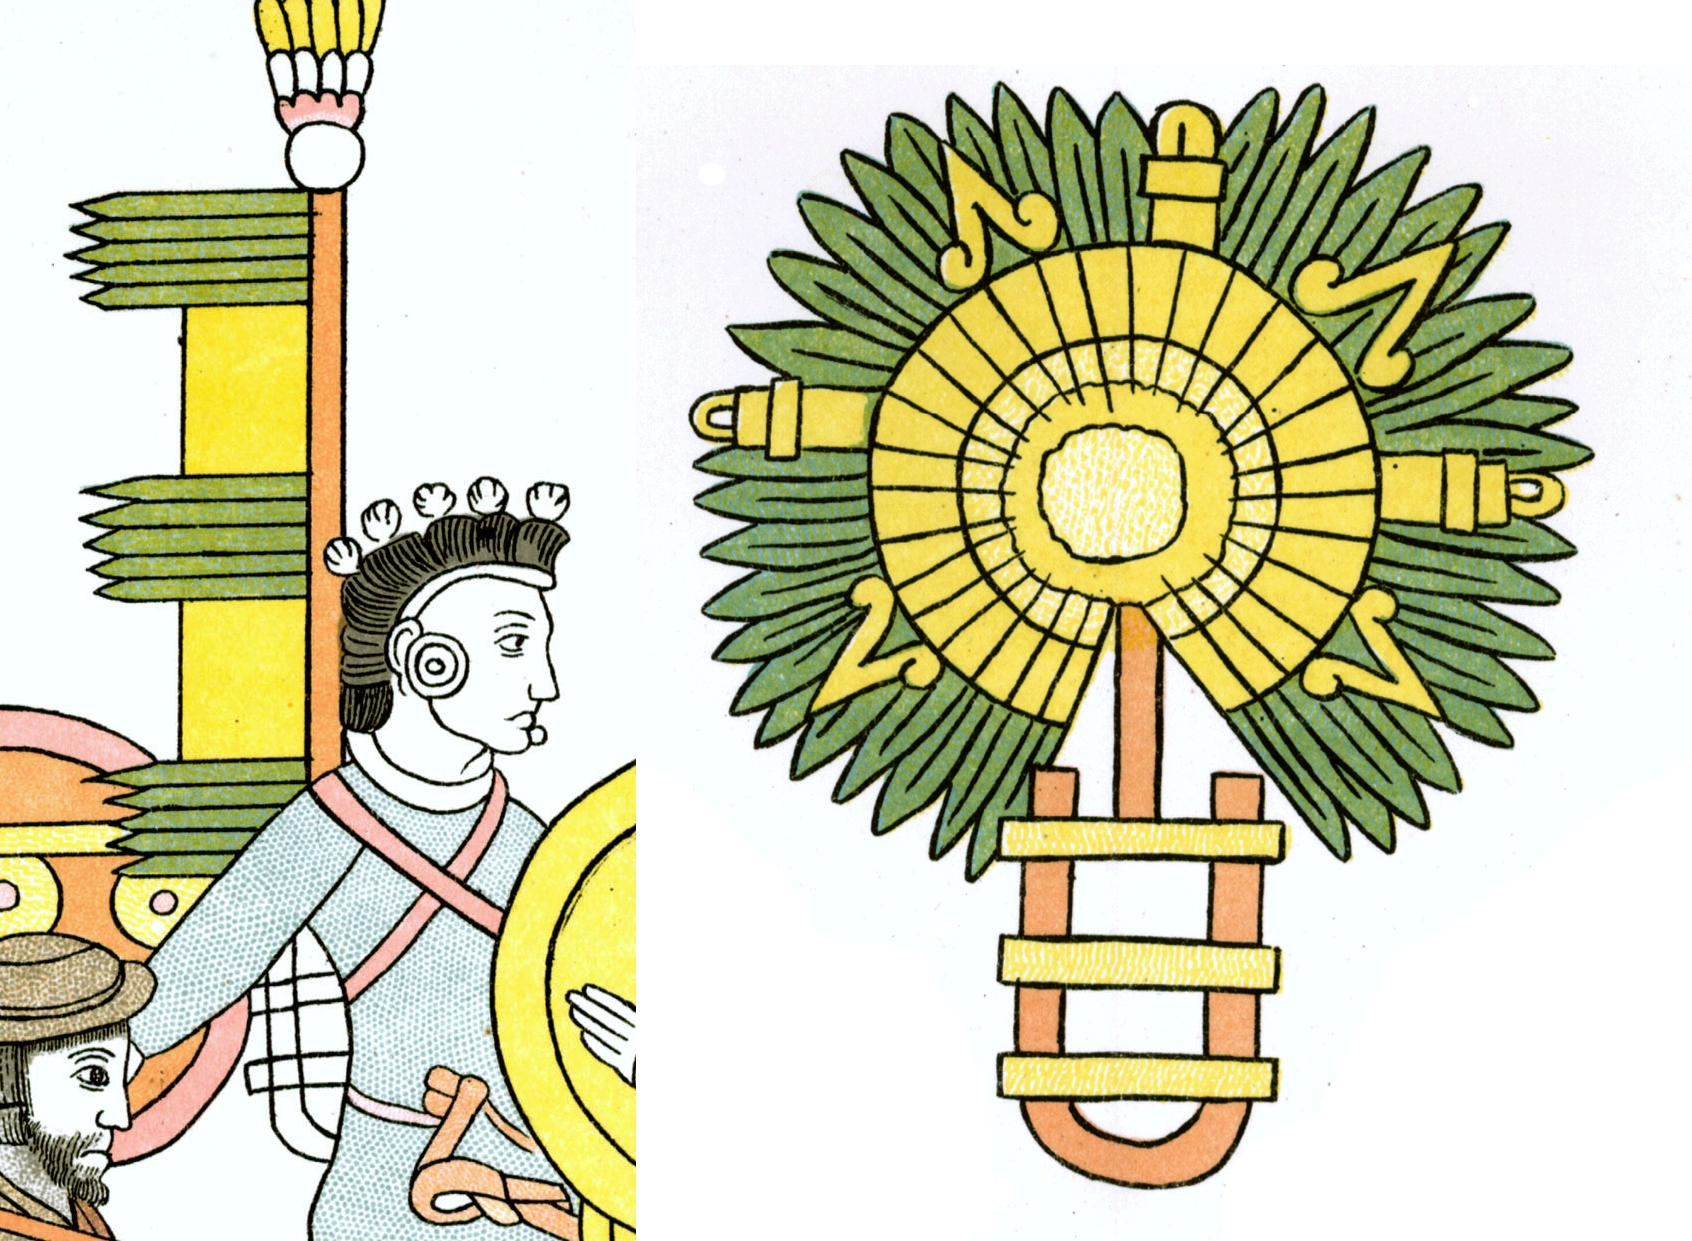 FIGURE 31. Battle standards in the Lienzo de Tlaxcala, showing a Banner-style battle standard strapped onto a warrior's back from Cell 40 (left) and a Sun-style battle standard showing the U-shaped support rack from Cell 29 (right).